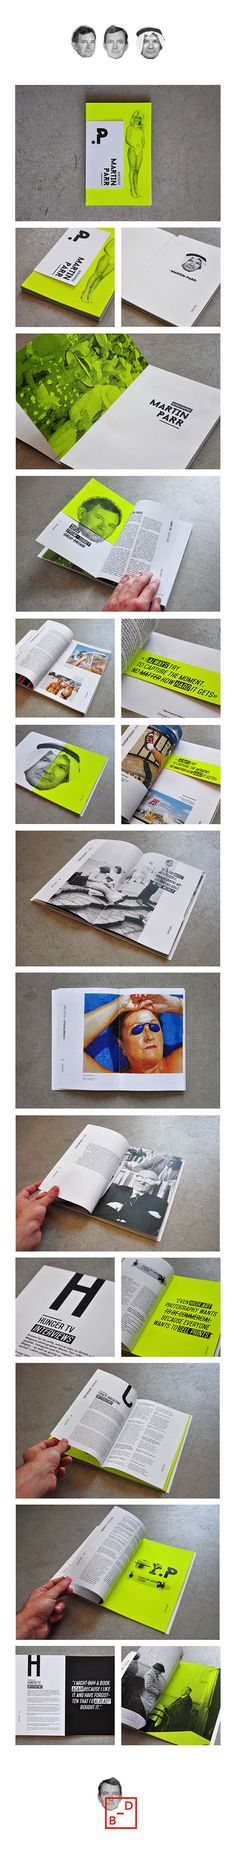 Martin Parr - Monography by Baptiste David, via Behance